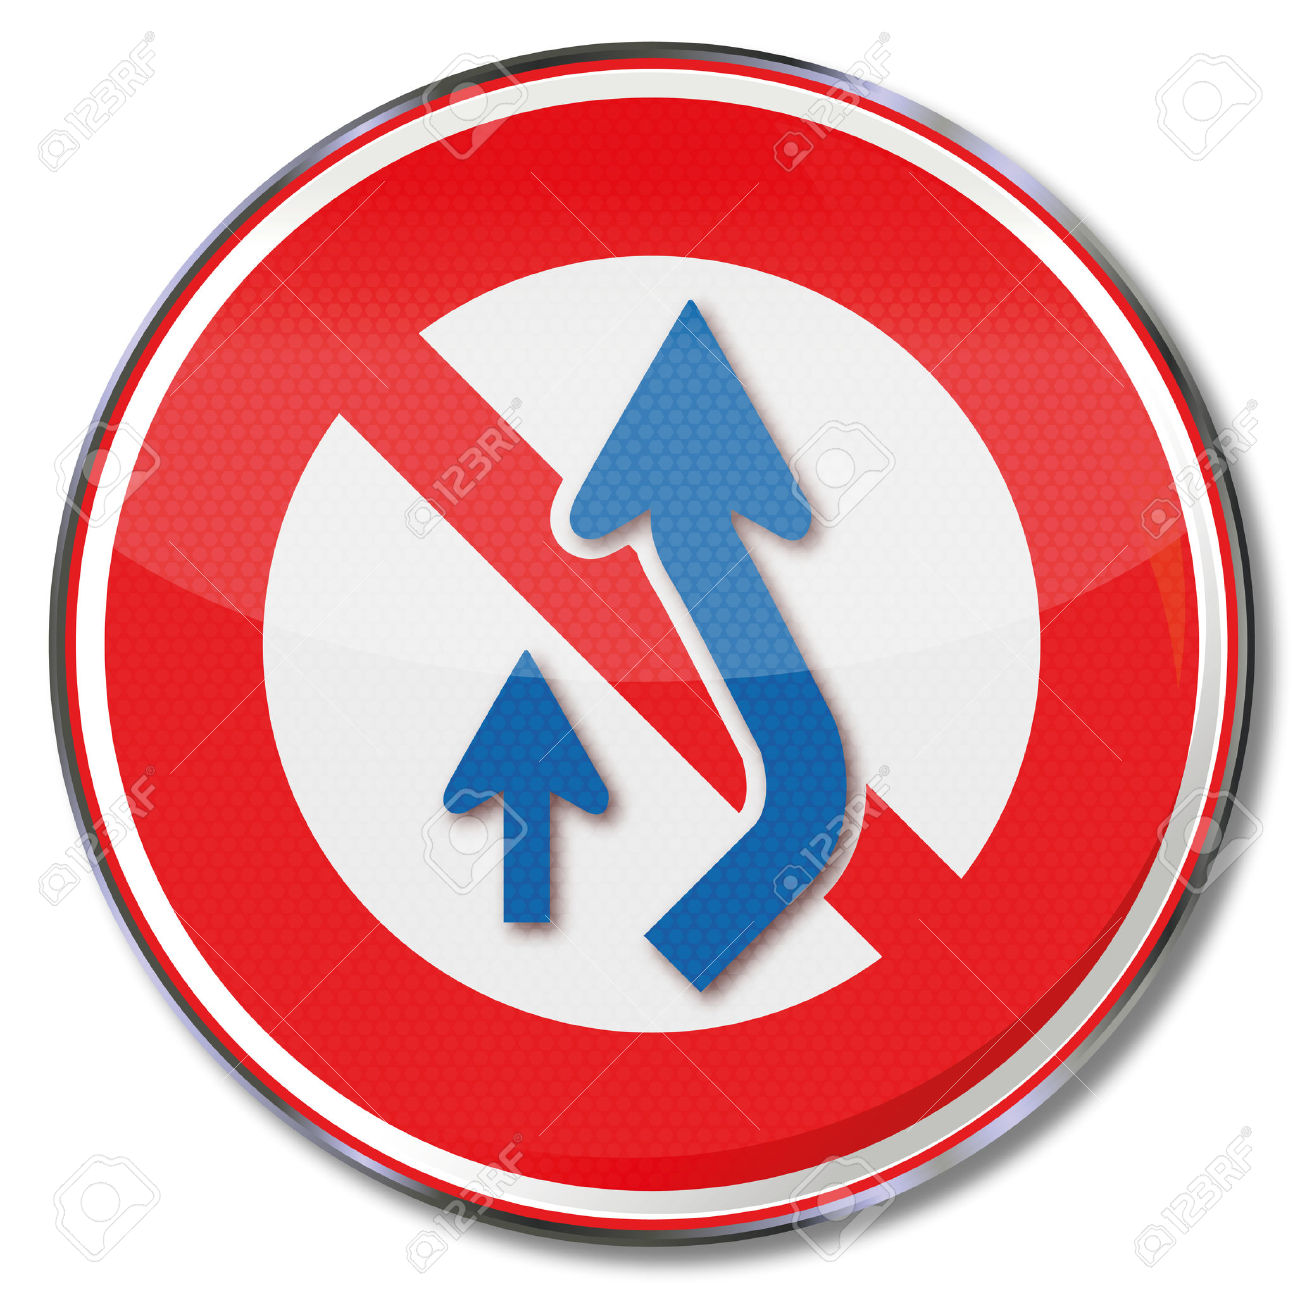 Sign No Overtaking In Japan Royalty Free Cliparts, Vectors, And.